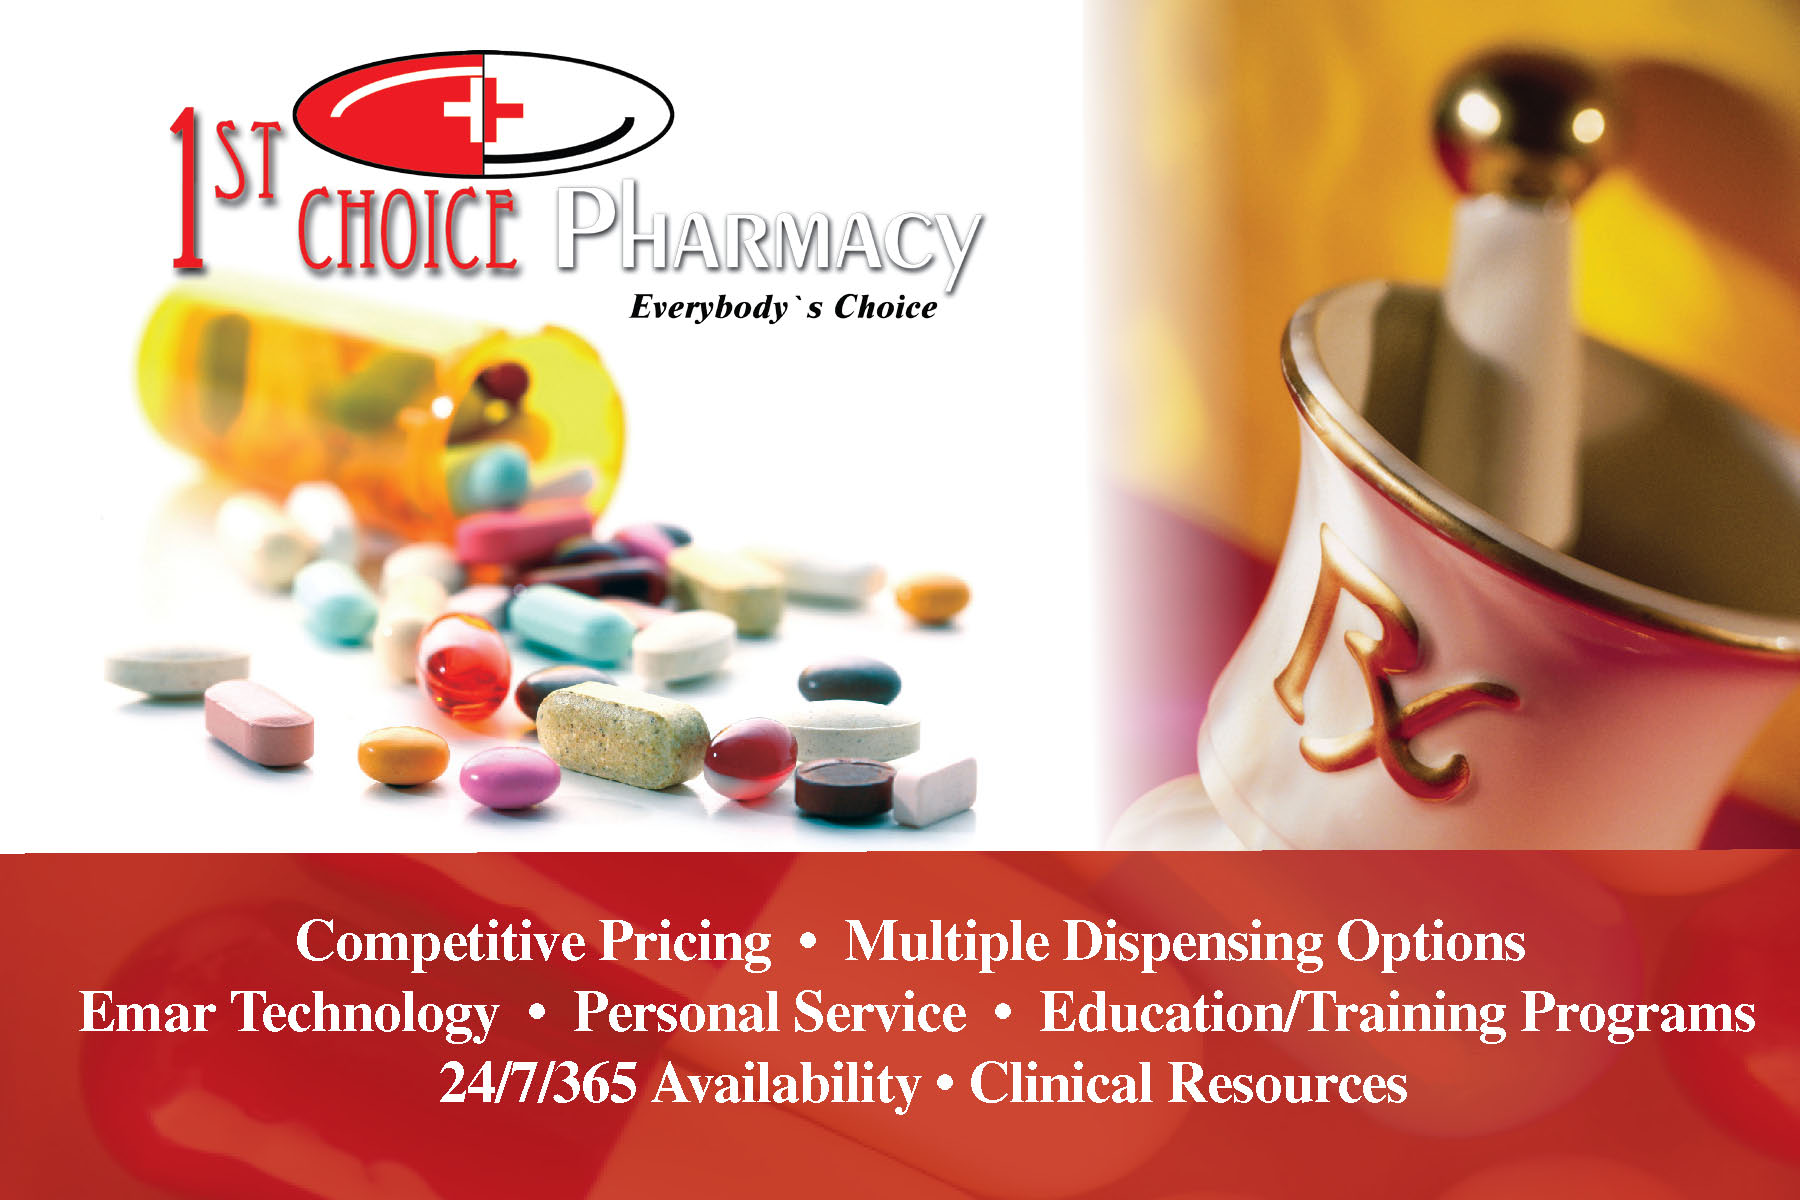 1st+choice+pharmacy+postcard_Page_1.jpg